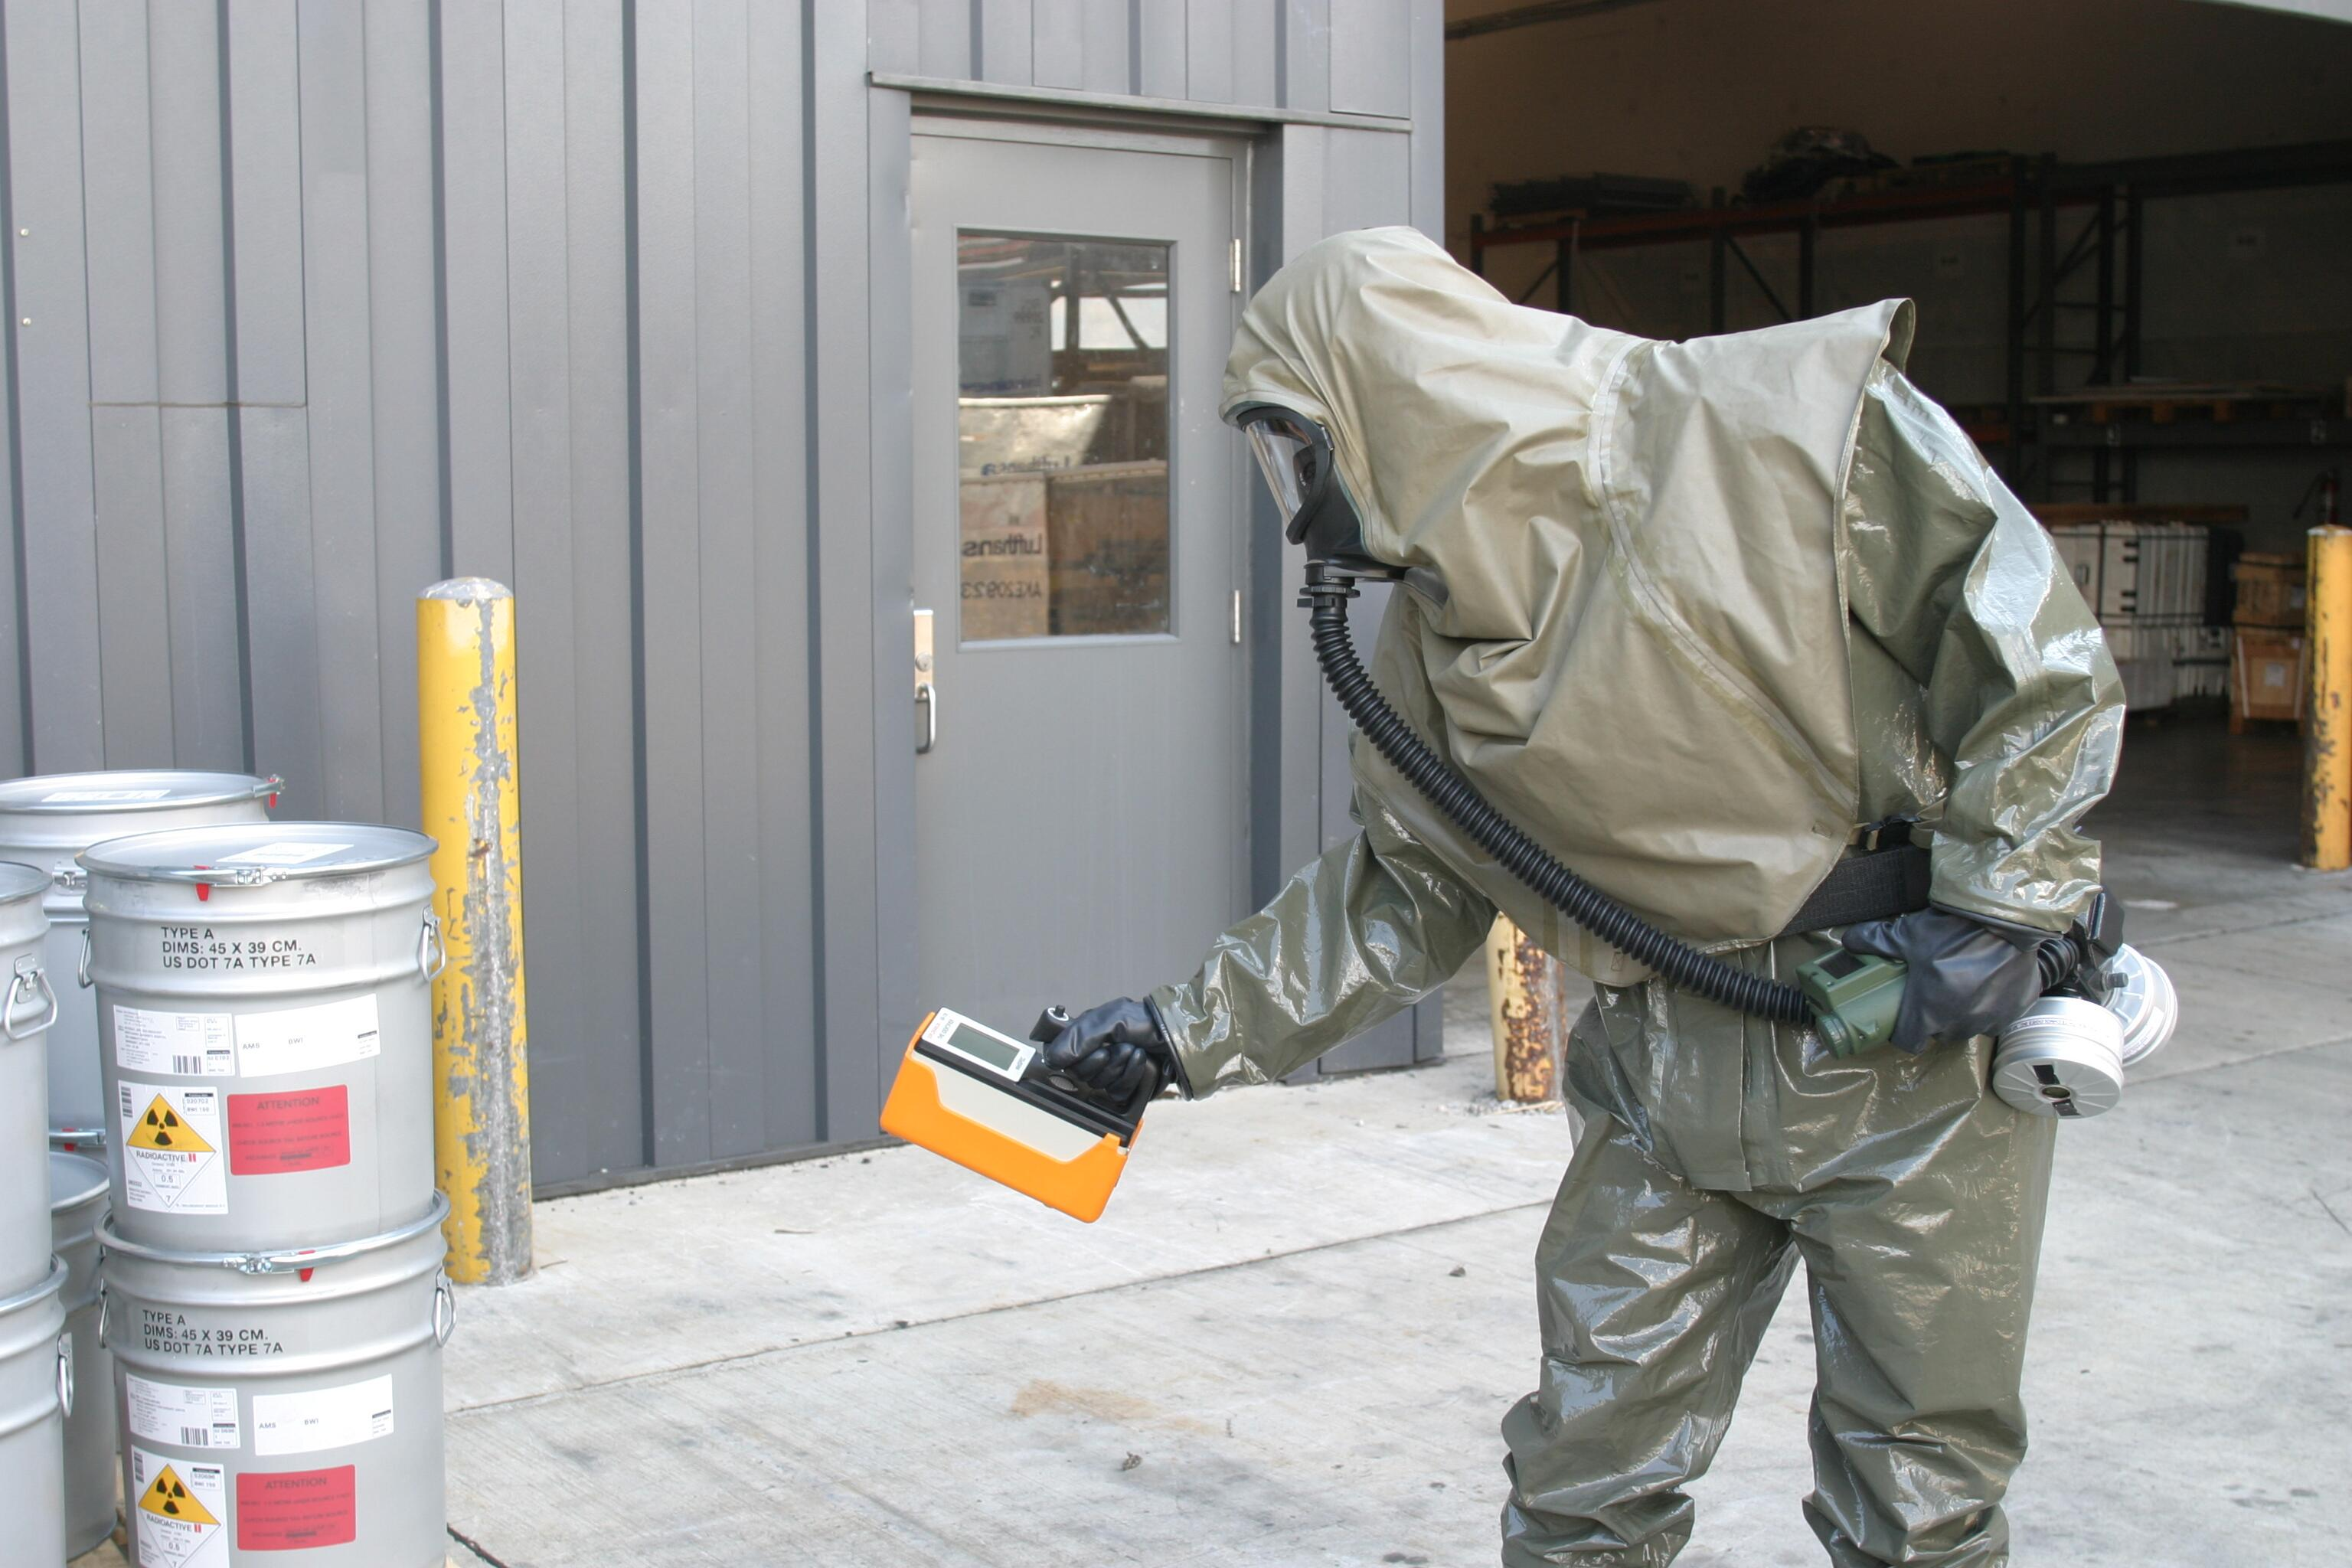 Customs and Border Protection has the capability to check and evaluate hazardous materials.